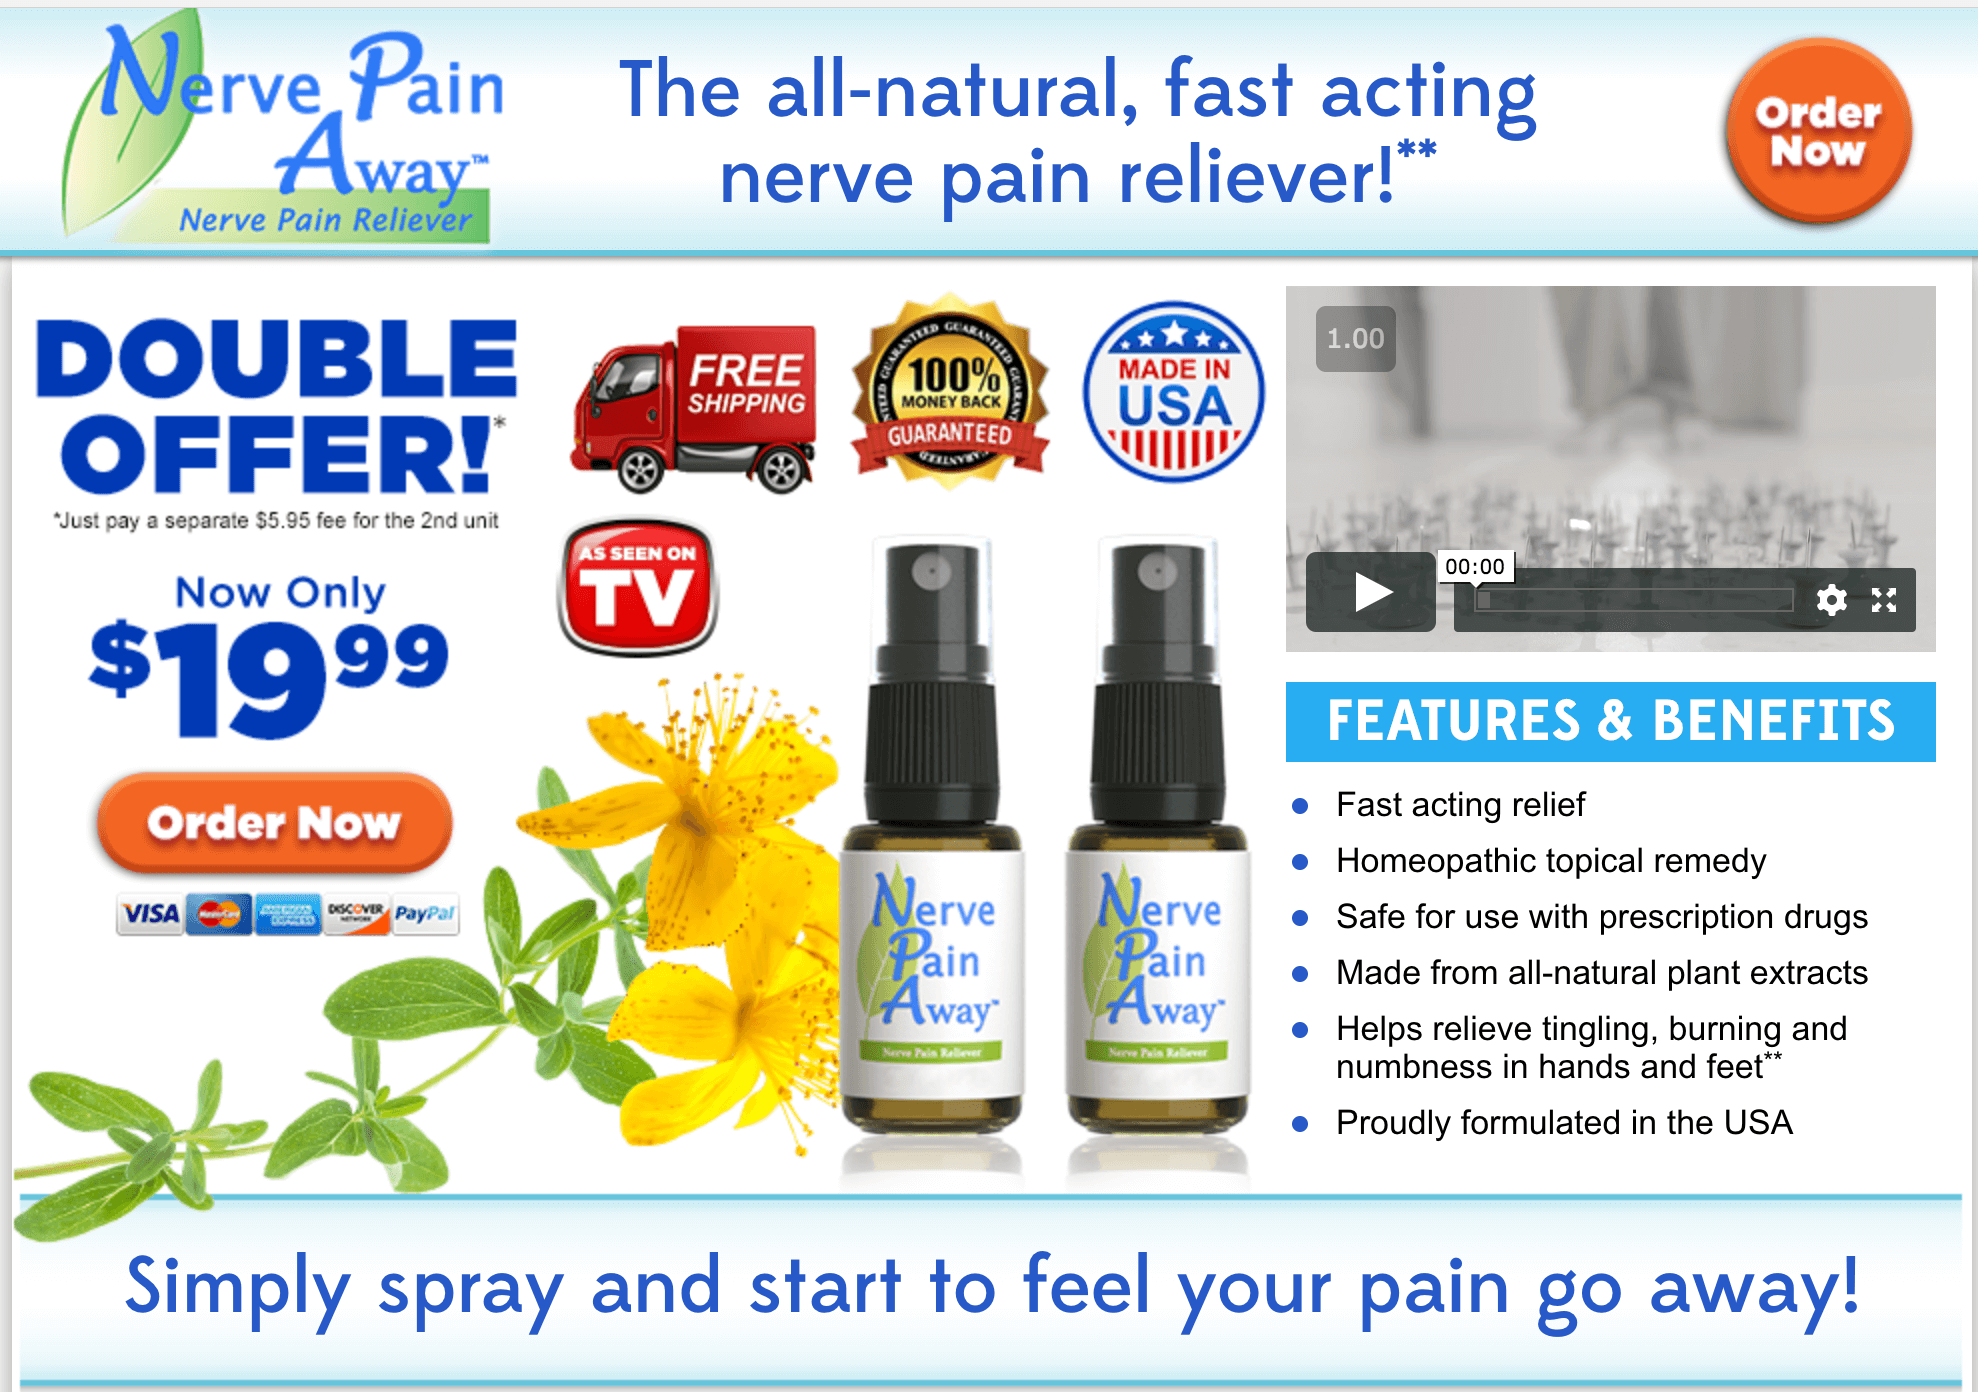 Nerve Pain Away Reviews: This As Seen On TV Neuropathy Relief Spray Is  Getting Attention, But Does It Live Up To The Hype?